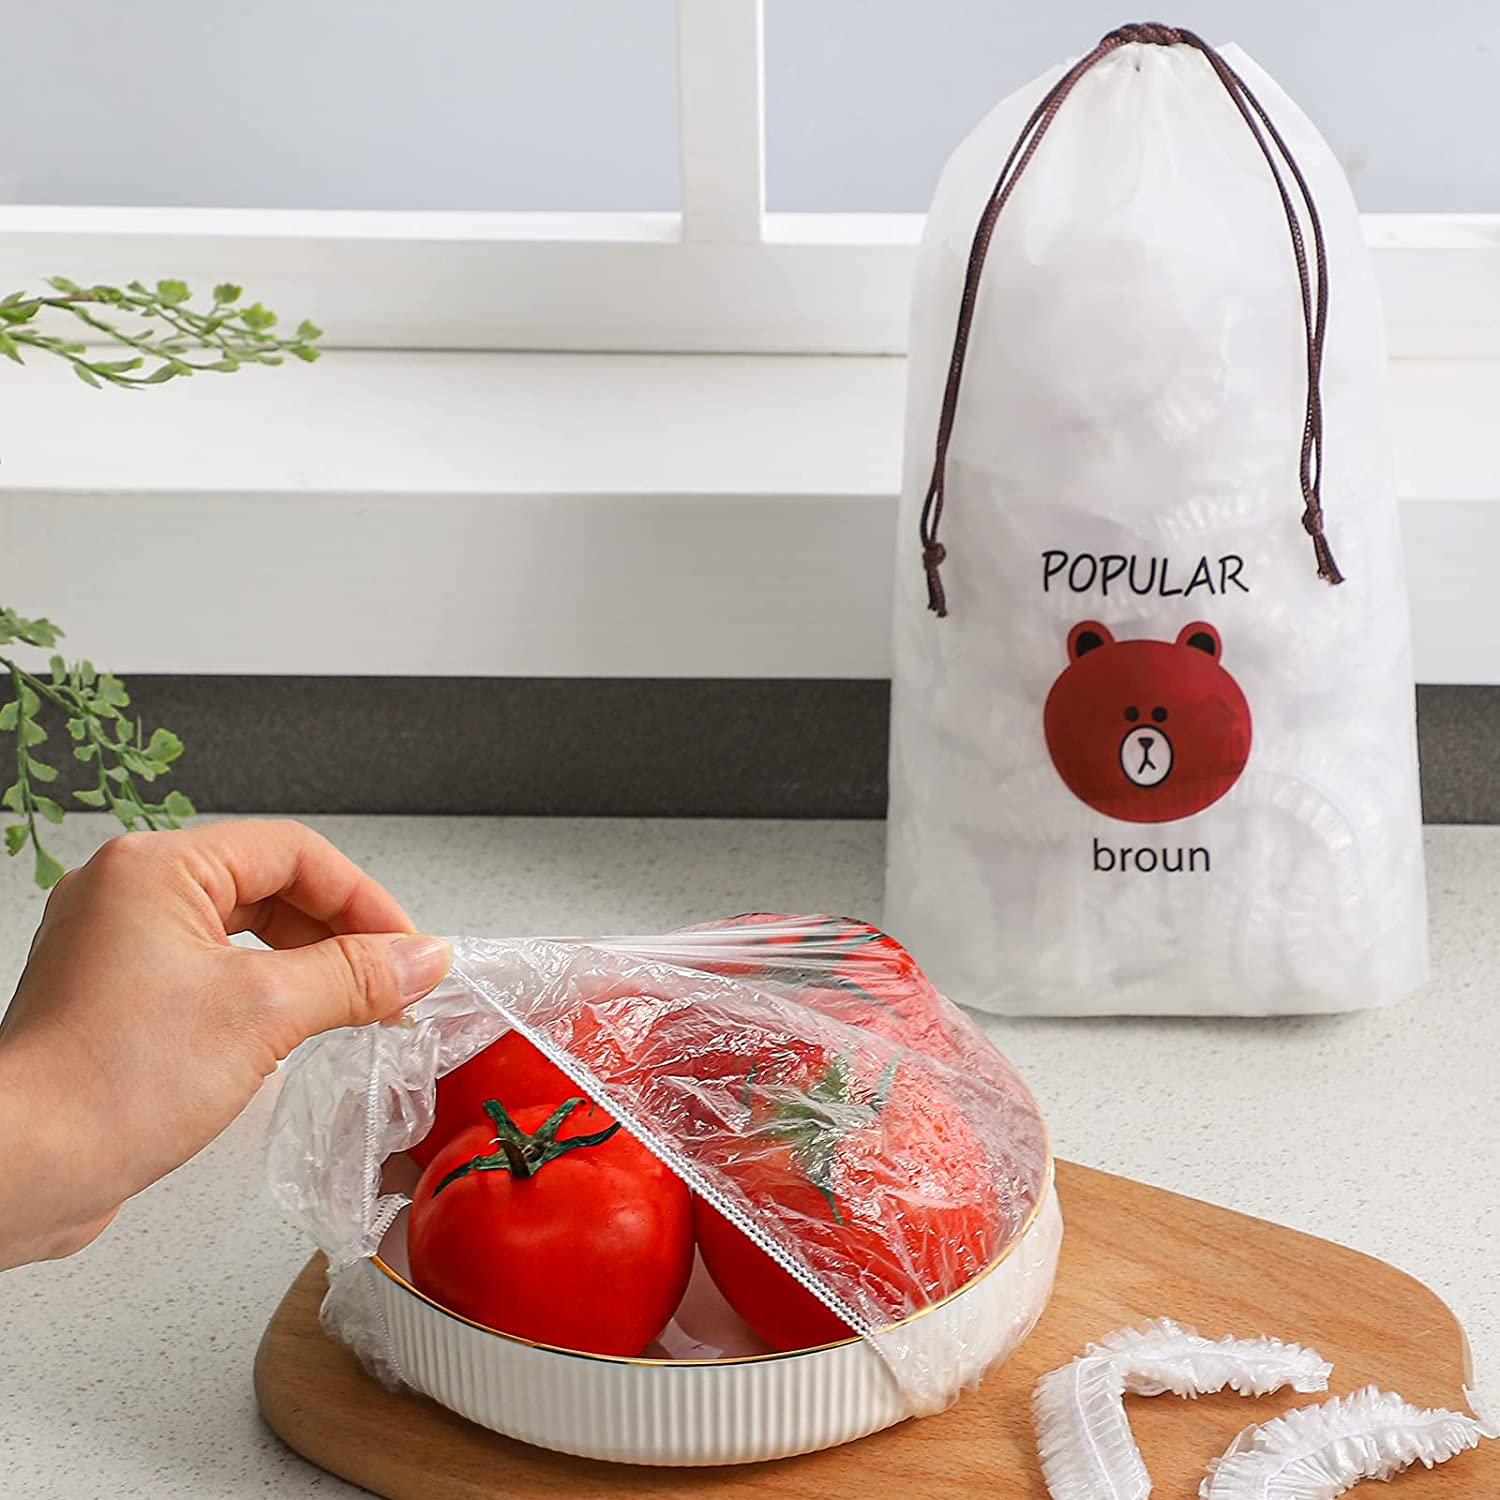 100pcs Fresh Keeping Bags Food Covers, GONGQIN Elastic Food Storage Covers Plastic Stretch Wraps Bowl Dish Plate Lids Caps Wrap for Storing Leftovers and Fruits for Outdoor Picnic Kitchen